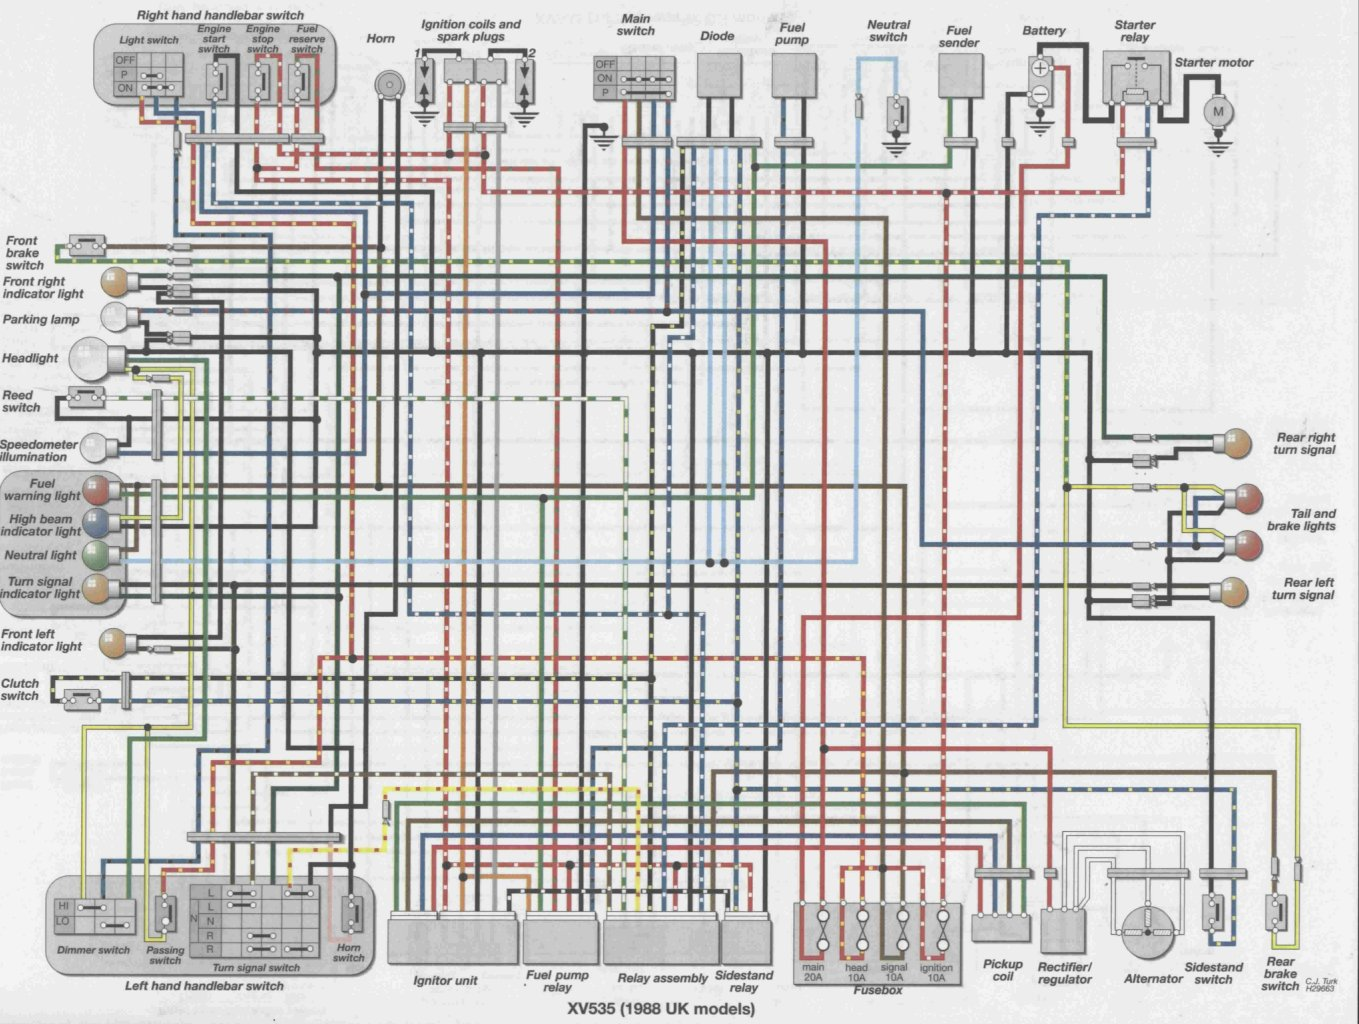 88_uk_XV535?resize=665%2C501 diagrams 13591047 xv750 wiring diagram 1996 1981 yamaha virago 1993 yamaha virago 535 wiring diagram at creativeand.co